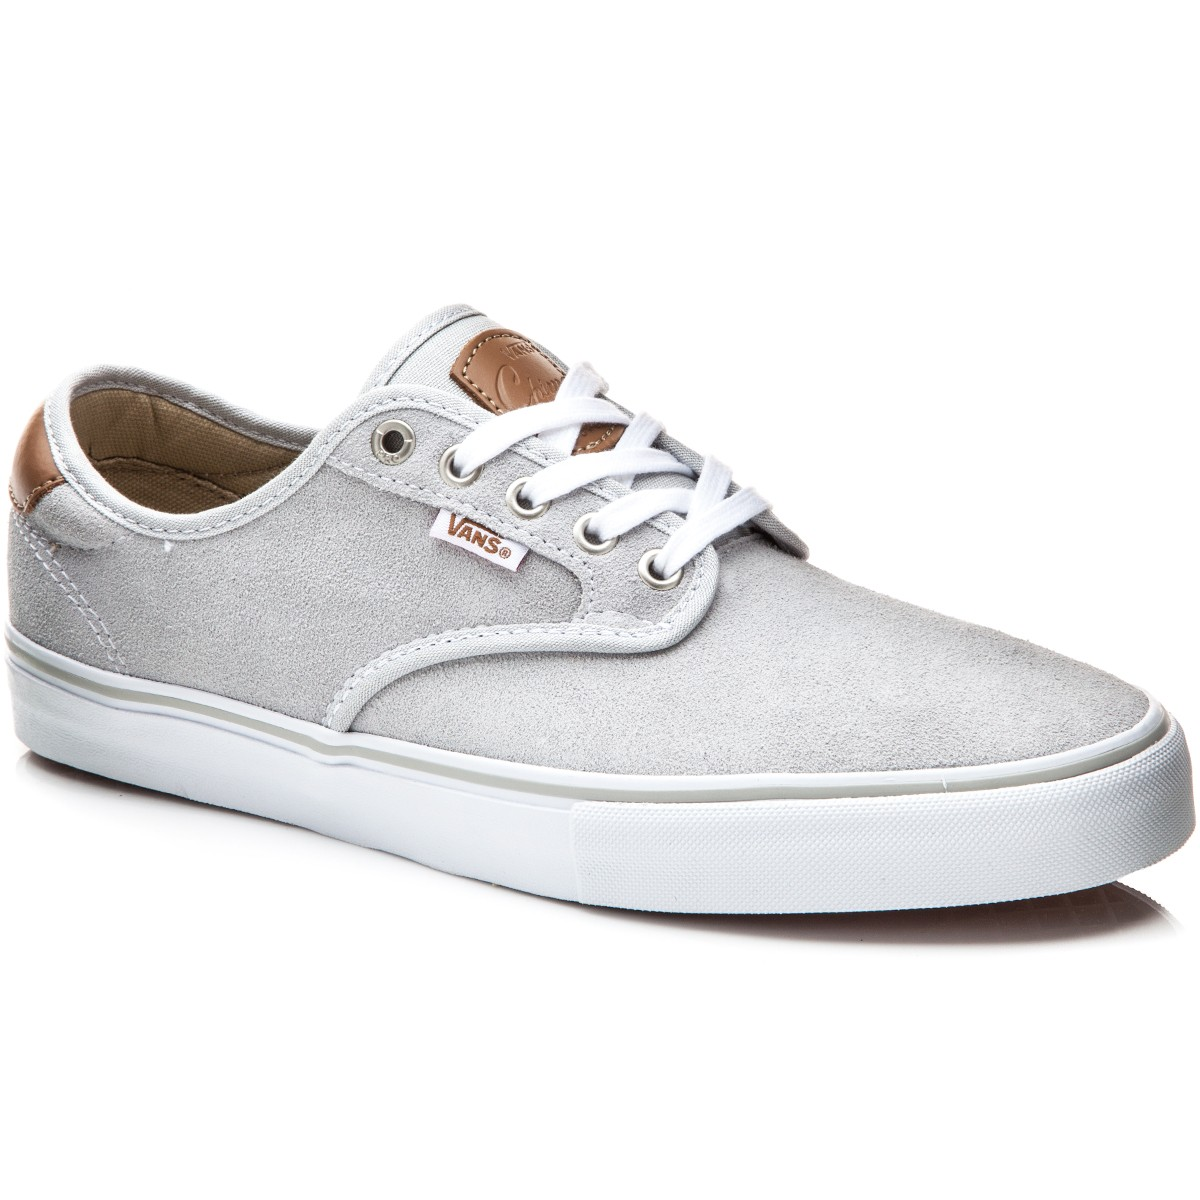 Vans Chima Ferguson Pro Shoes - Light Grey/White - 8.0